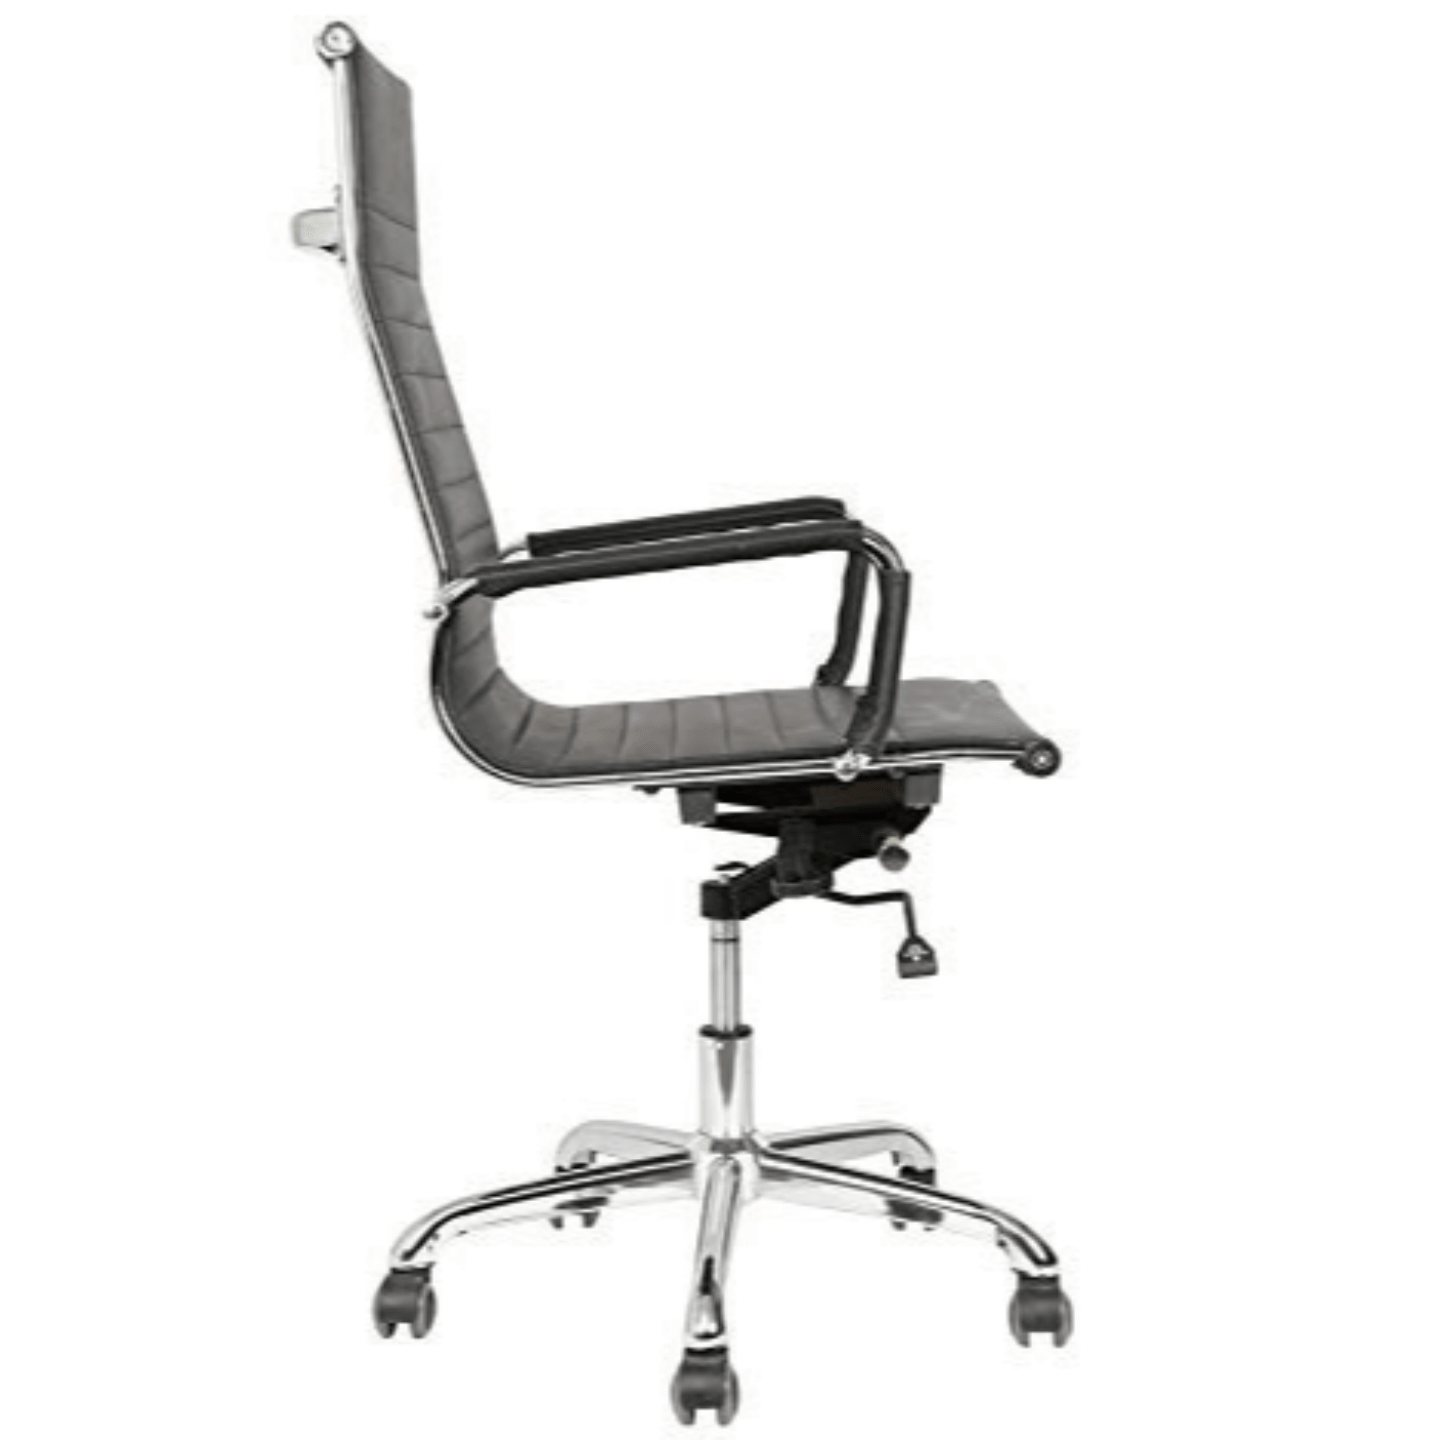 Home Office Chair Model - Hames AL